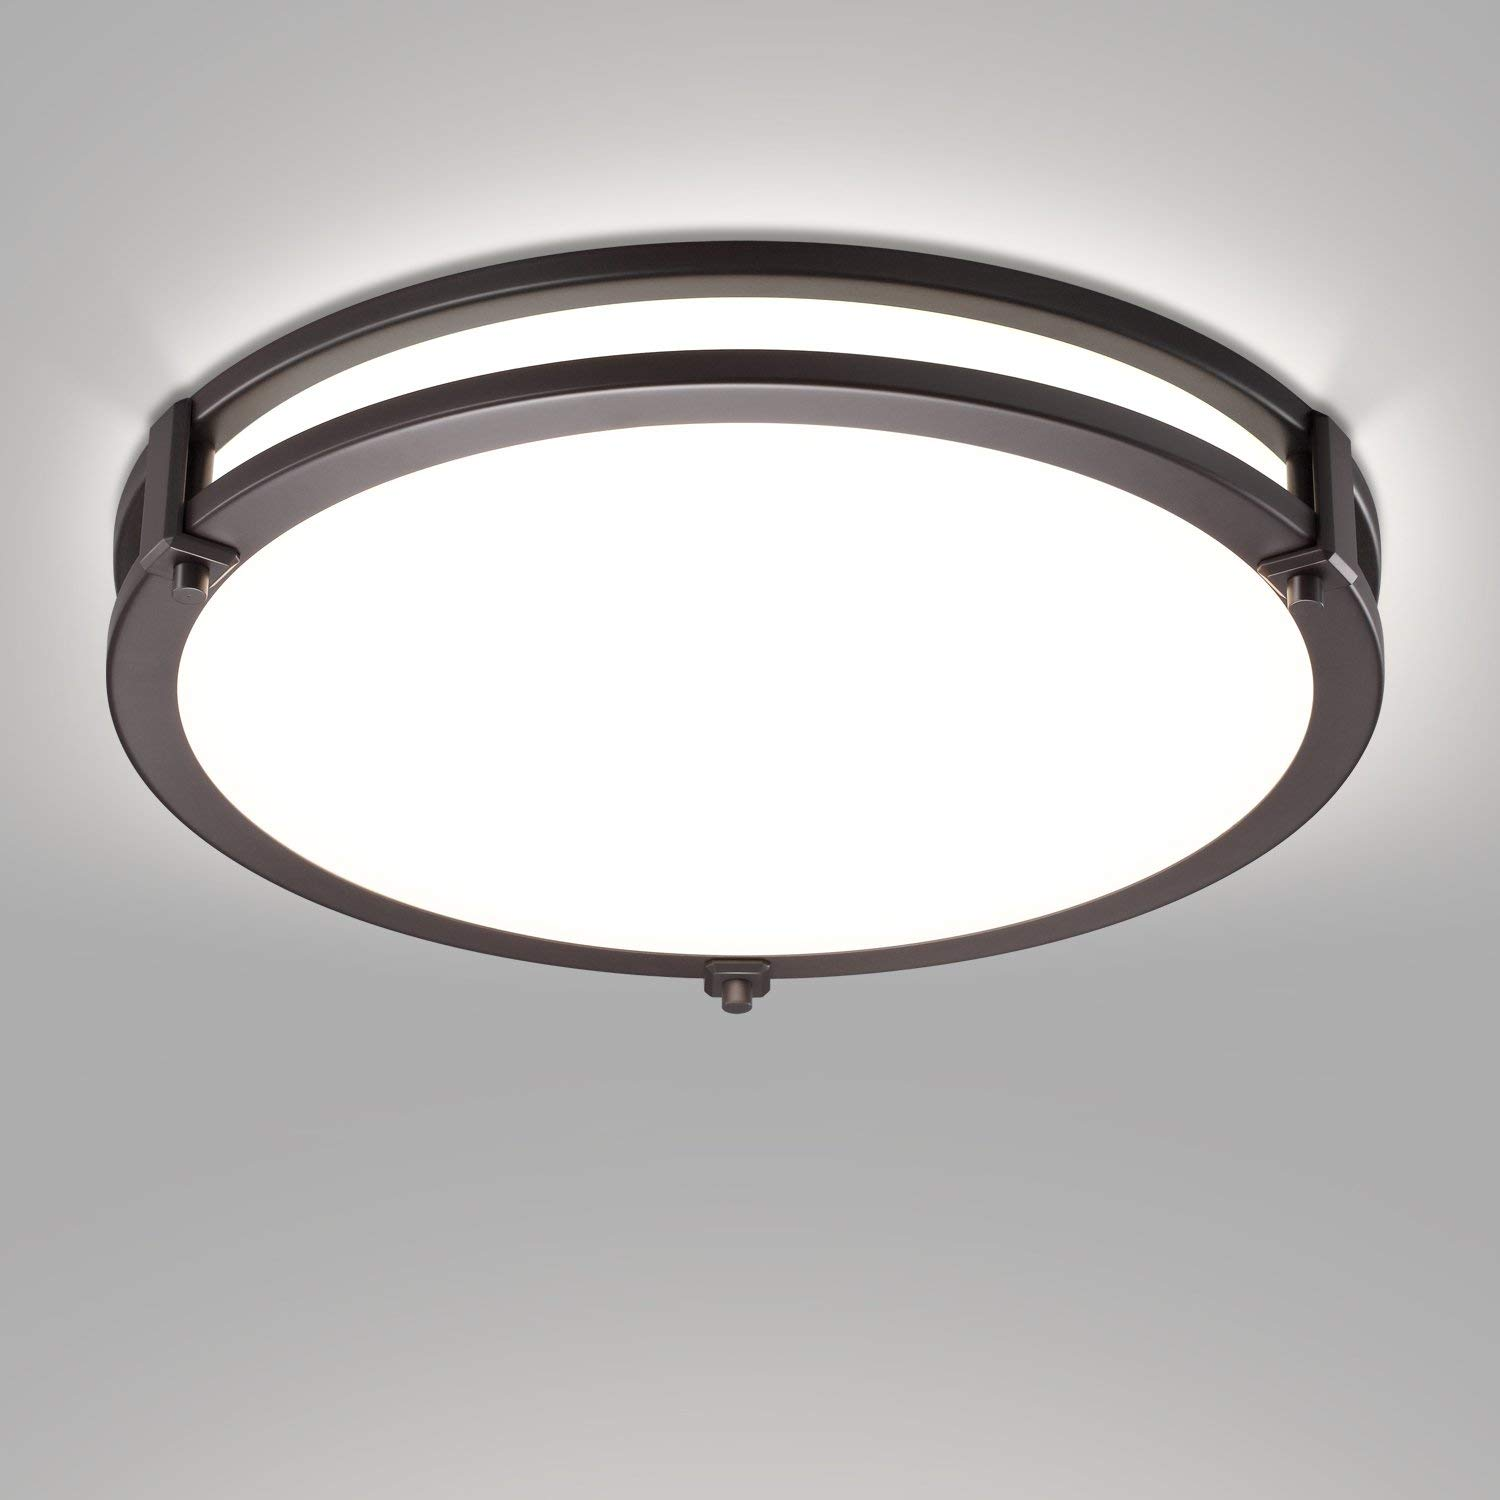 QPLUS Architectural Double Ring Flush Mount LED Ceiling Light Fixture 14 Inch - Bronze, 5000K - 1 Pack 5 Year Warranty 50000 Hours Energy Star Certified Dimmable cETLus